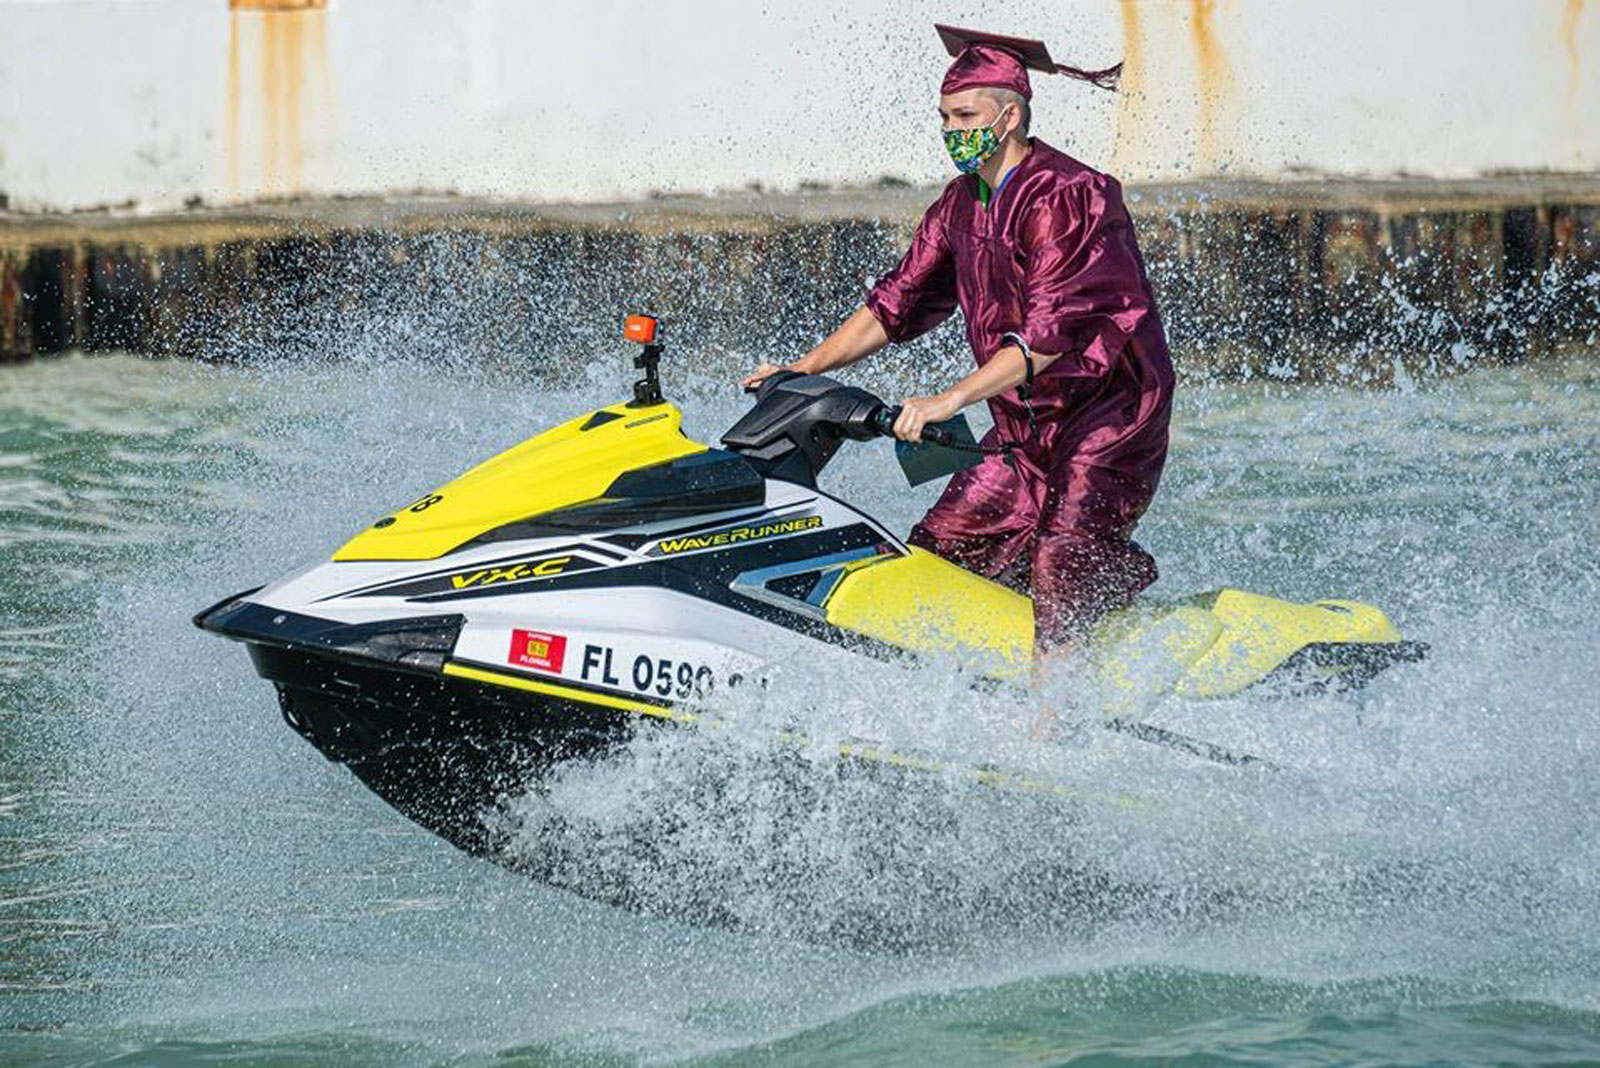 Florida charter school holds graduation ceremony on jet skis